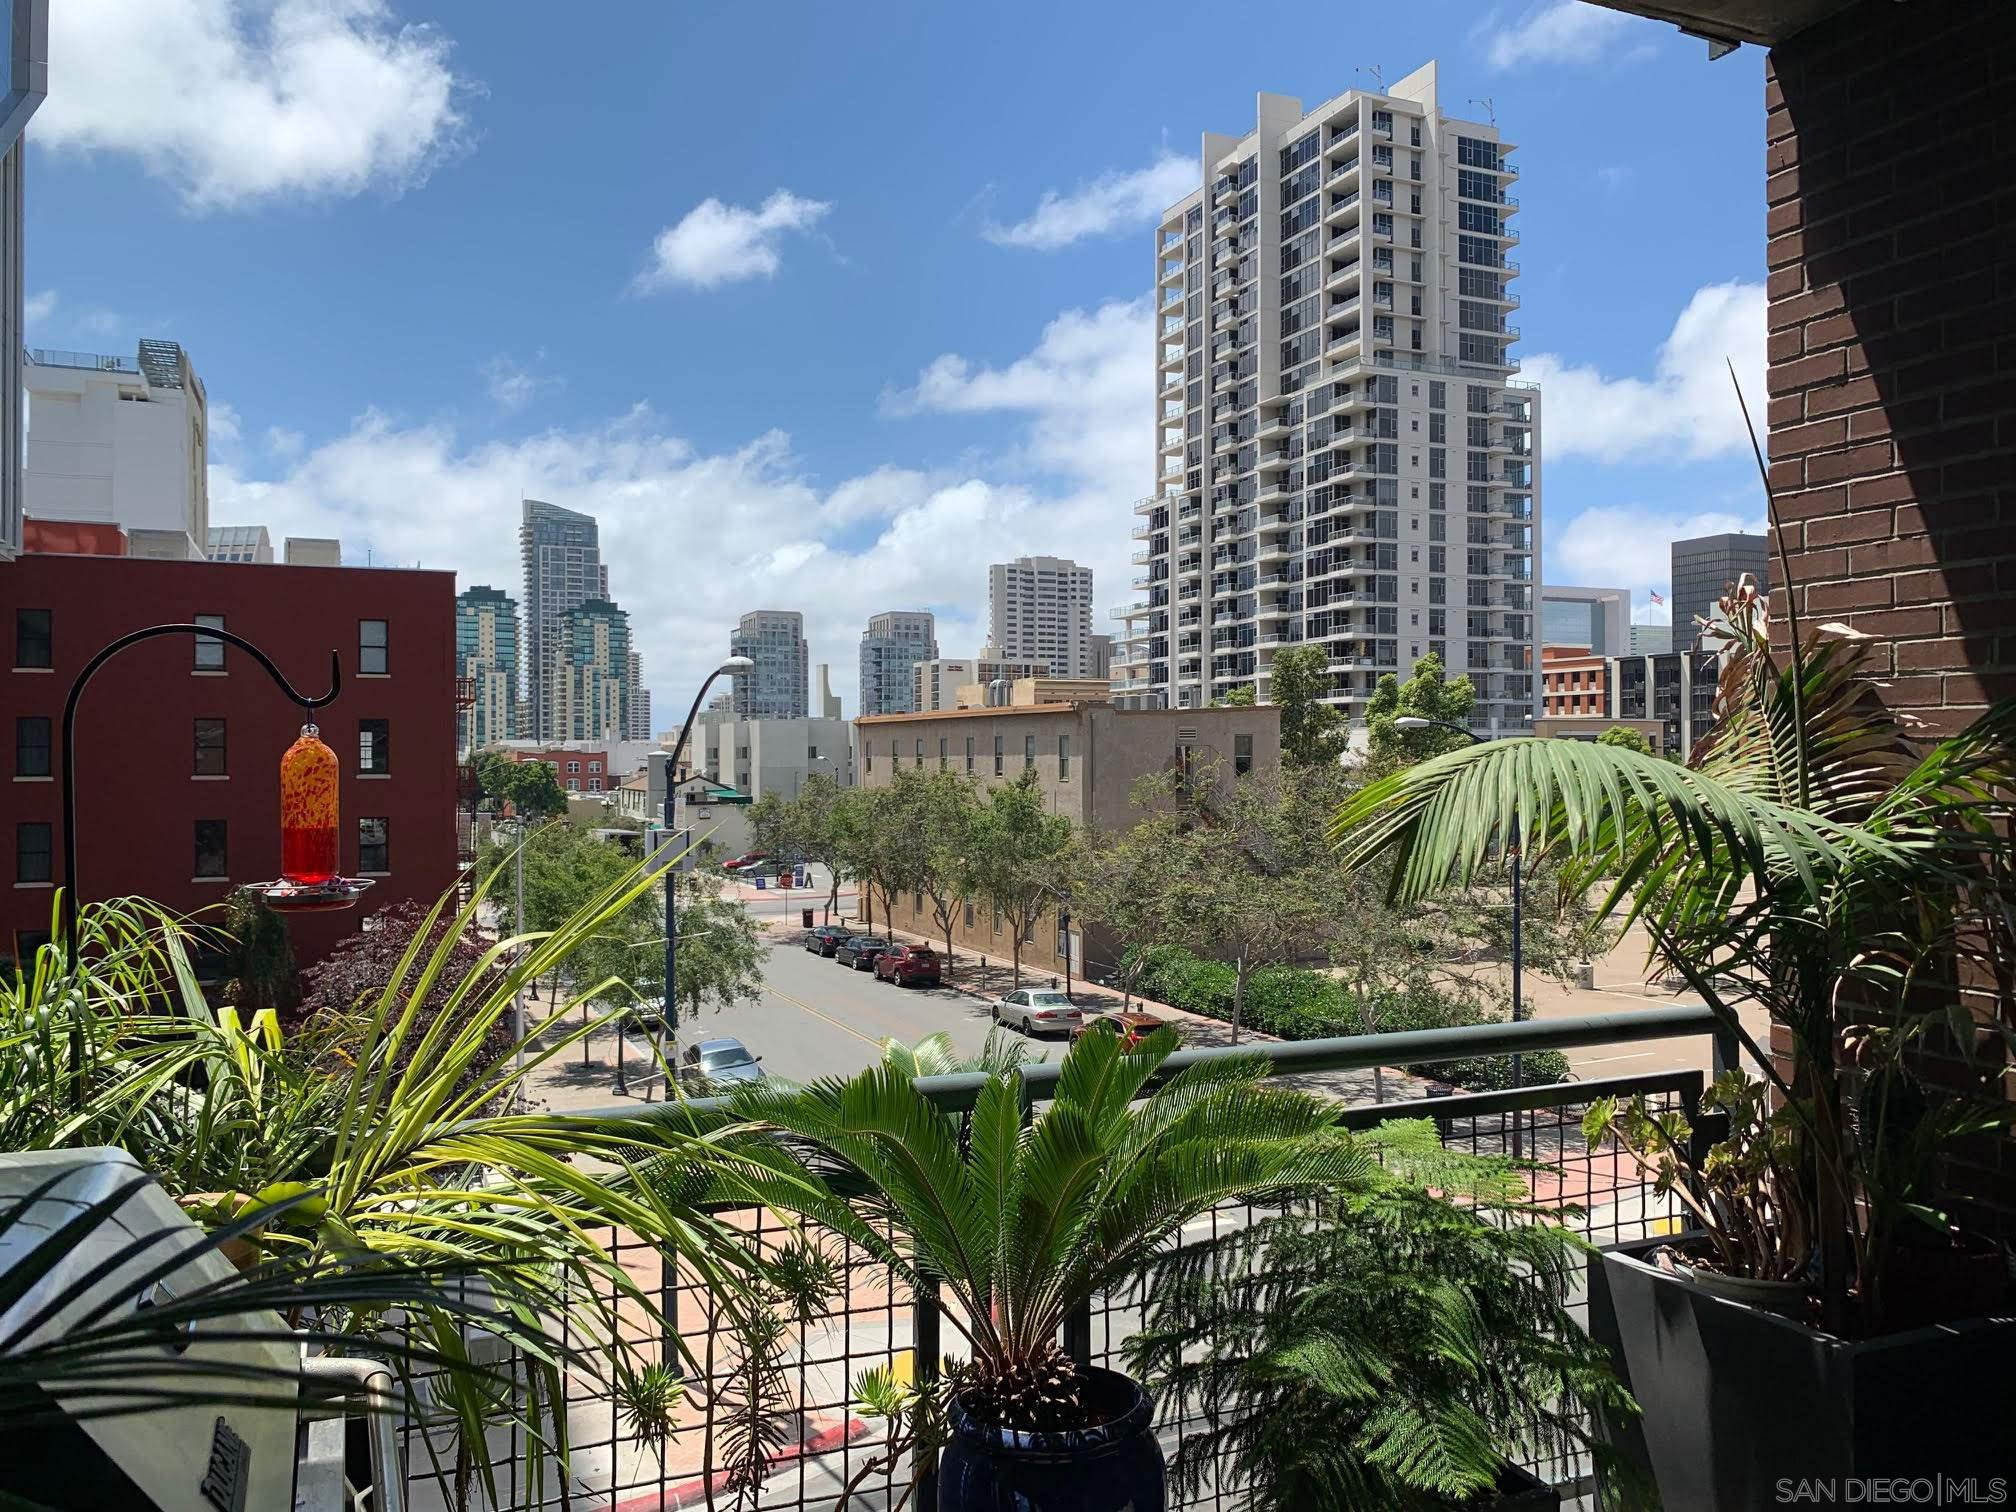 Main Photo: DOWNTOWN Condo for sale : 2 bedrooms : 877 ISLAND #301 in SAN DIEGO